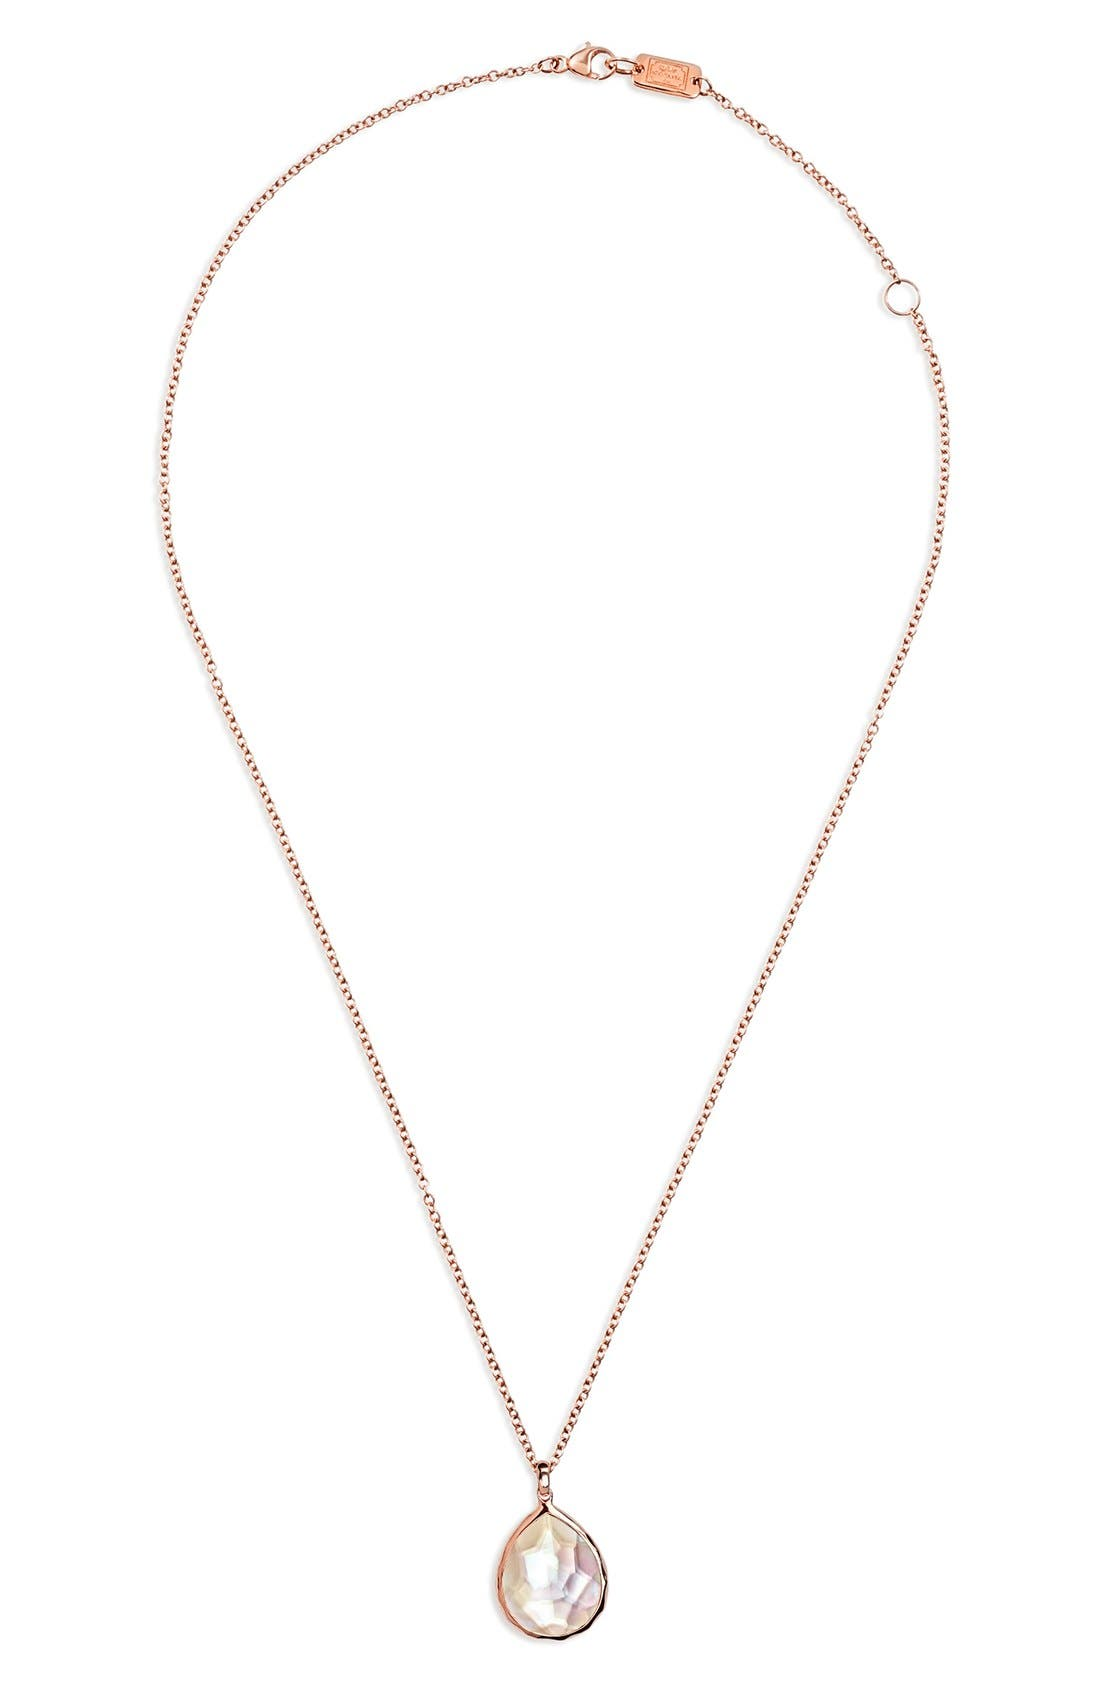 Main Image - Ippolita 'Wonderland' Mini Teardrop Pendant Necklace (Online Only)